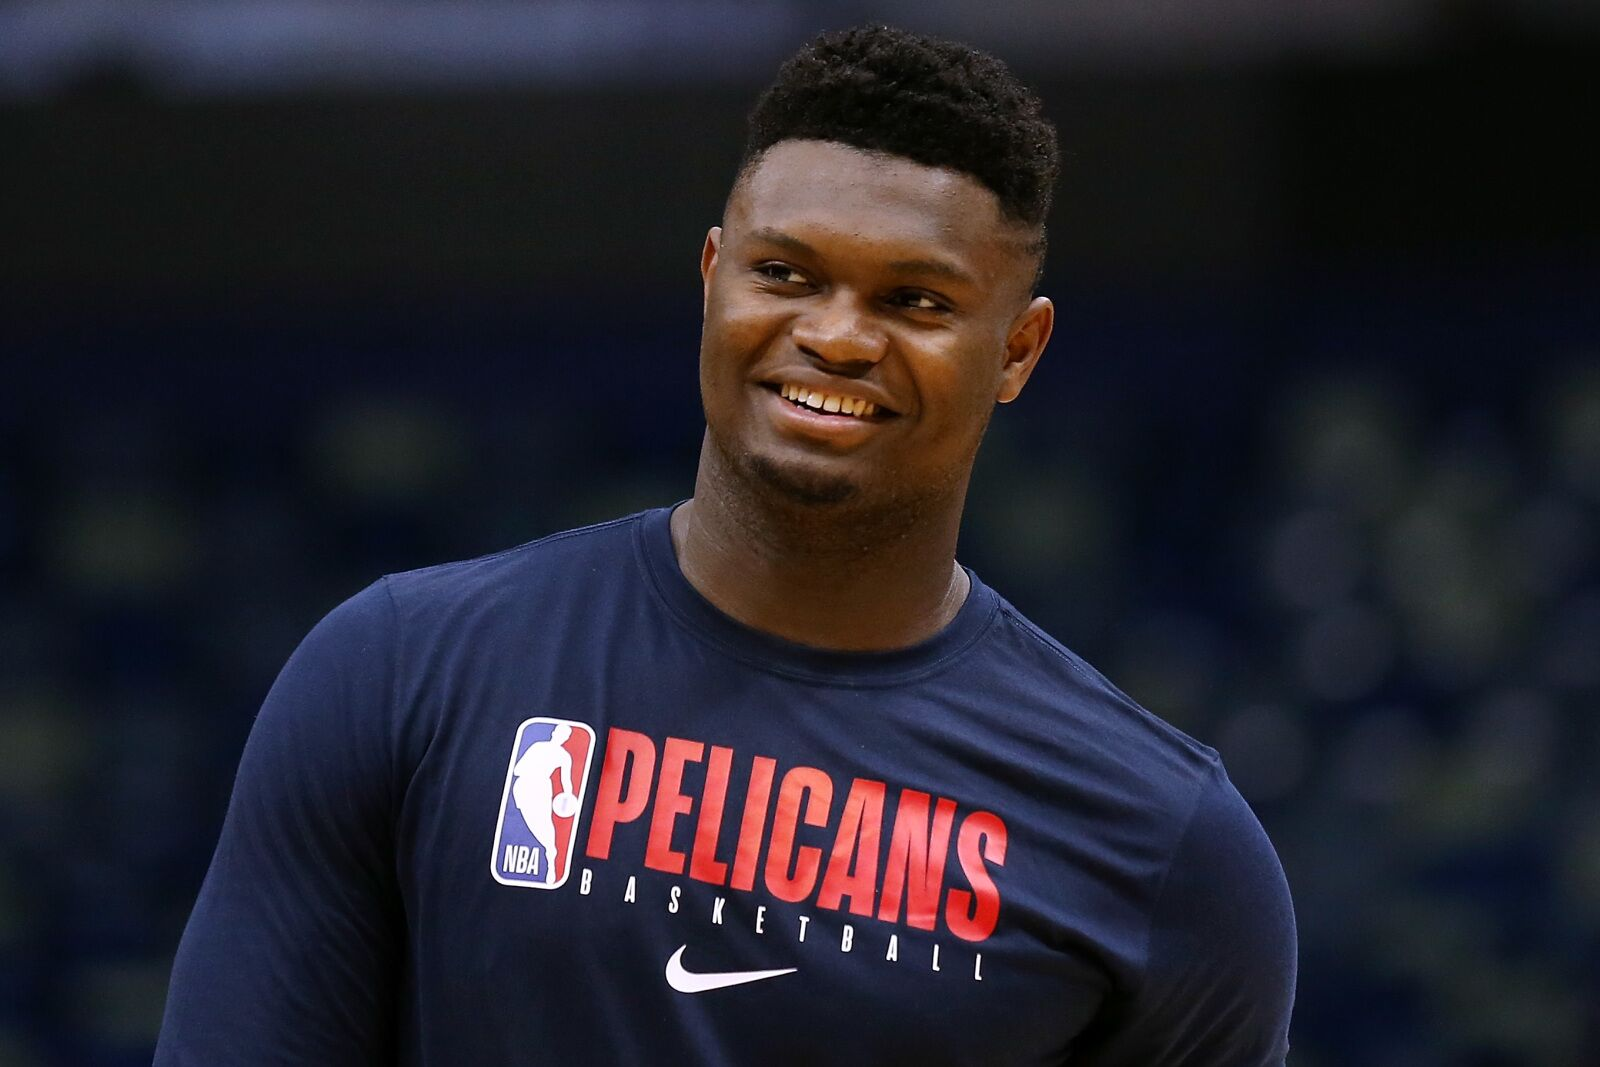 Duke Alumni: Expect fireworks from Zion Williamson in his NBA debut